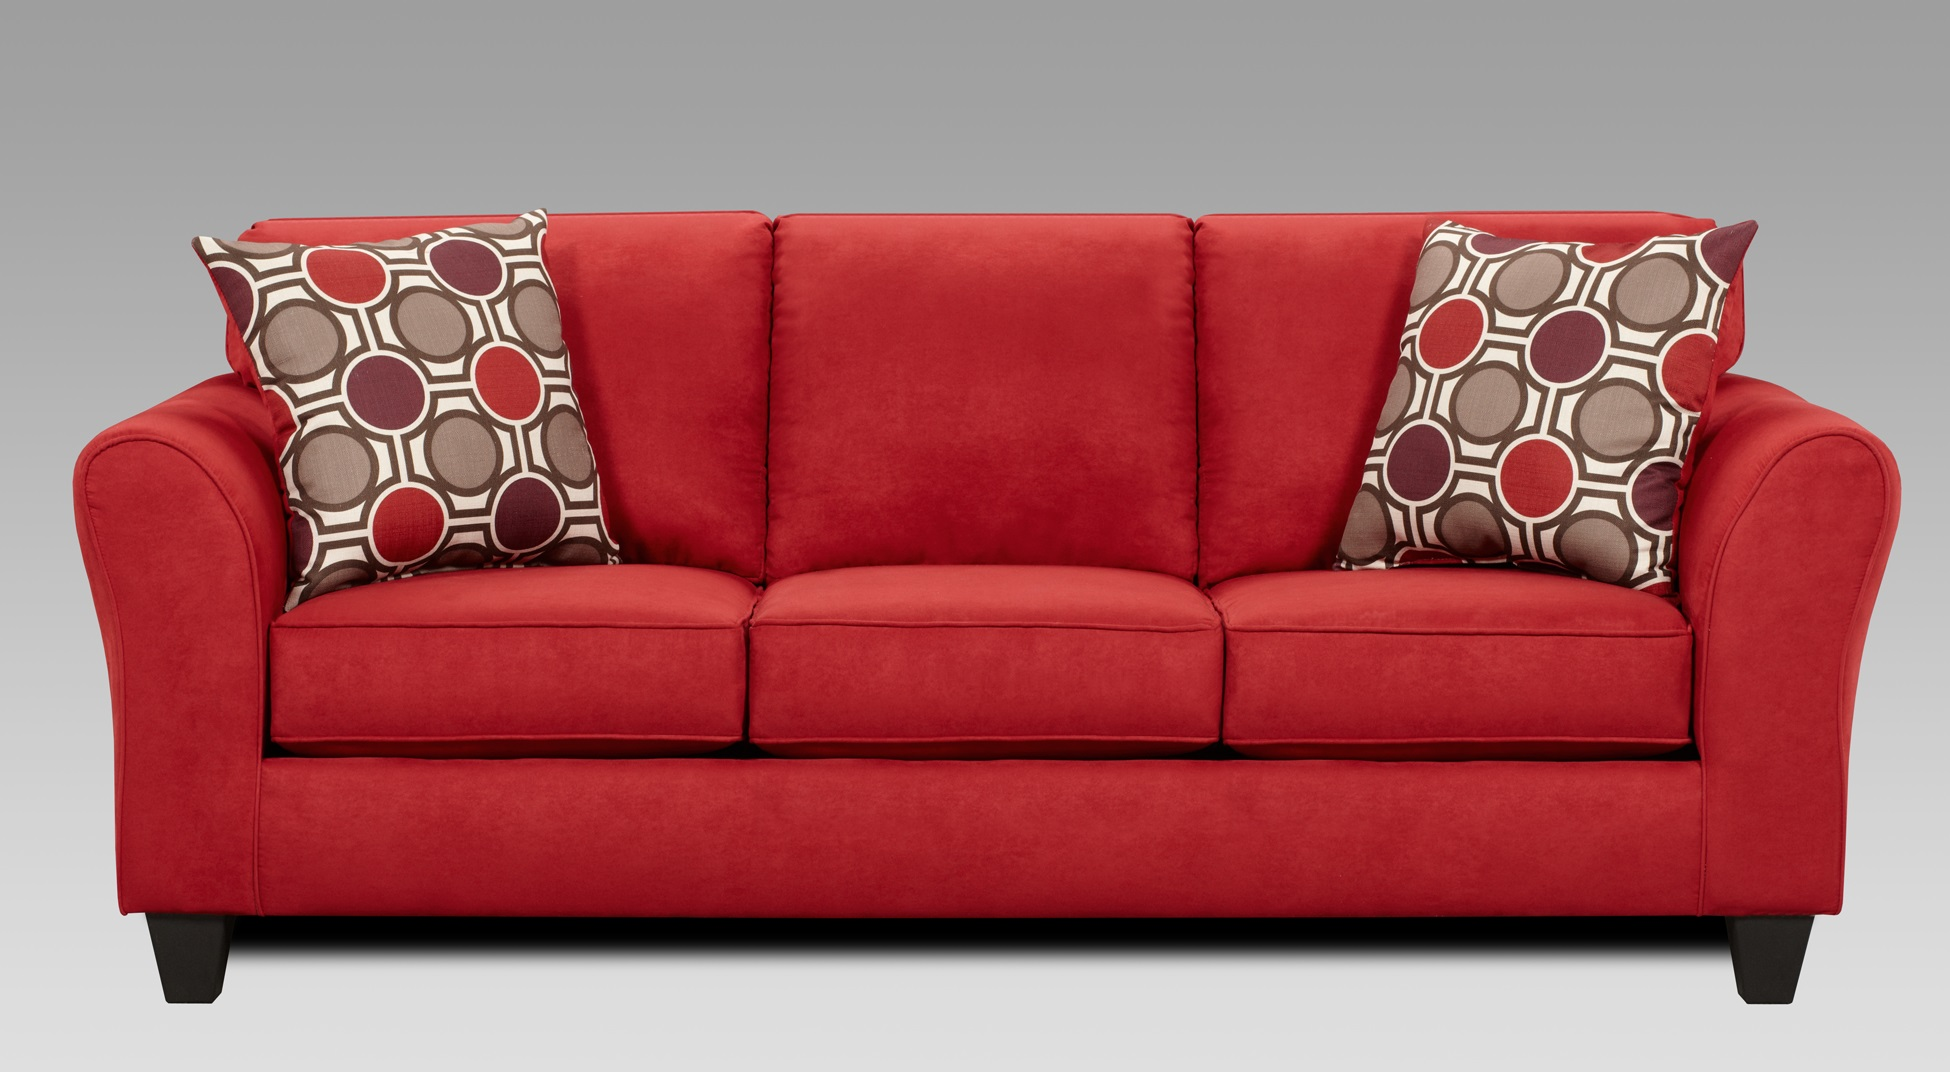 Red Reclining Sofa Microfiber Awesome Red Reclining Sofa